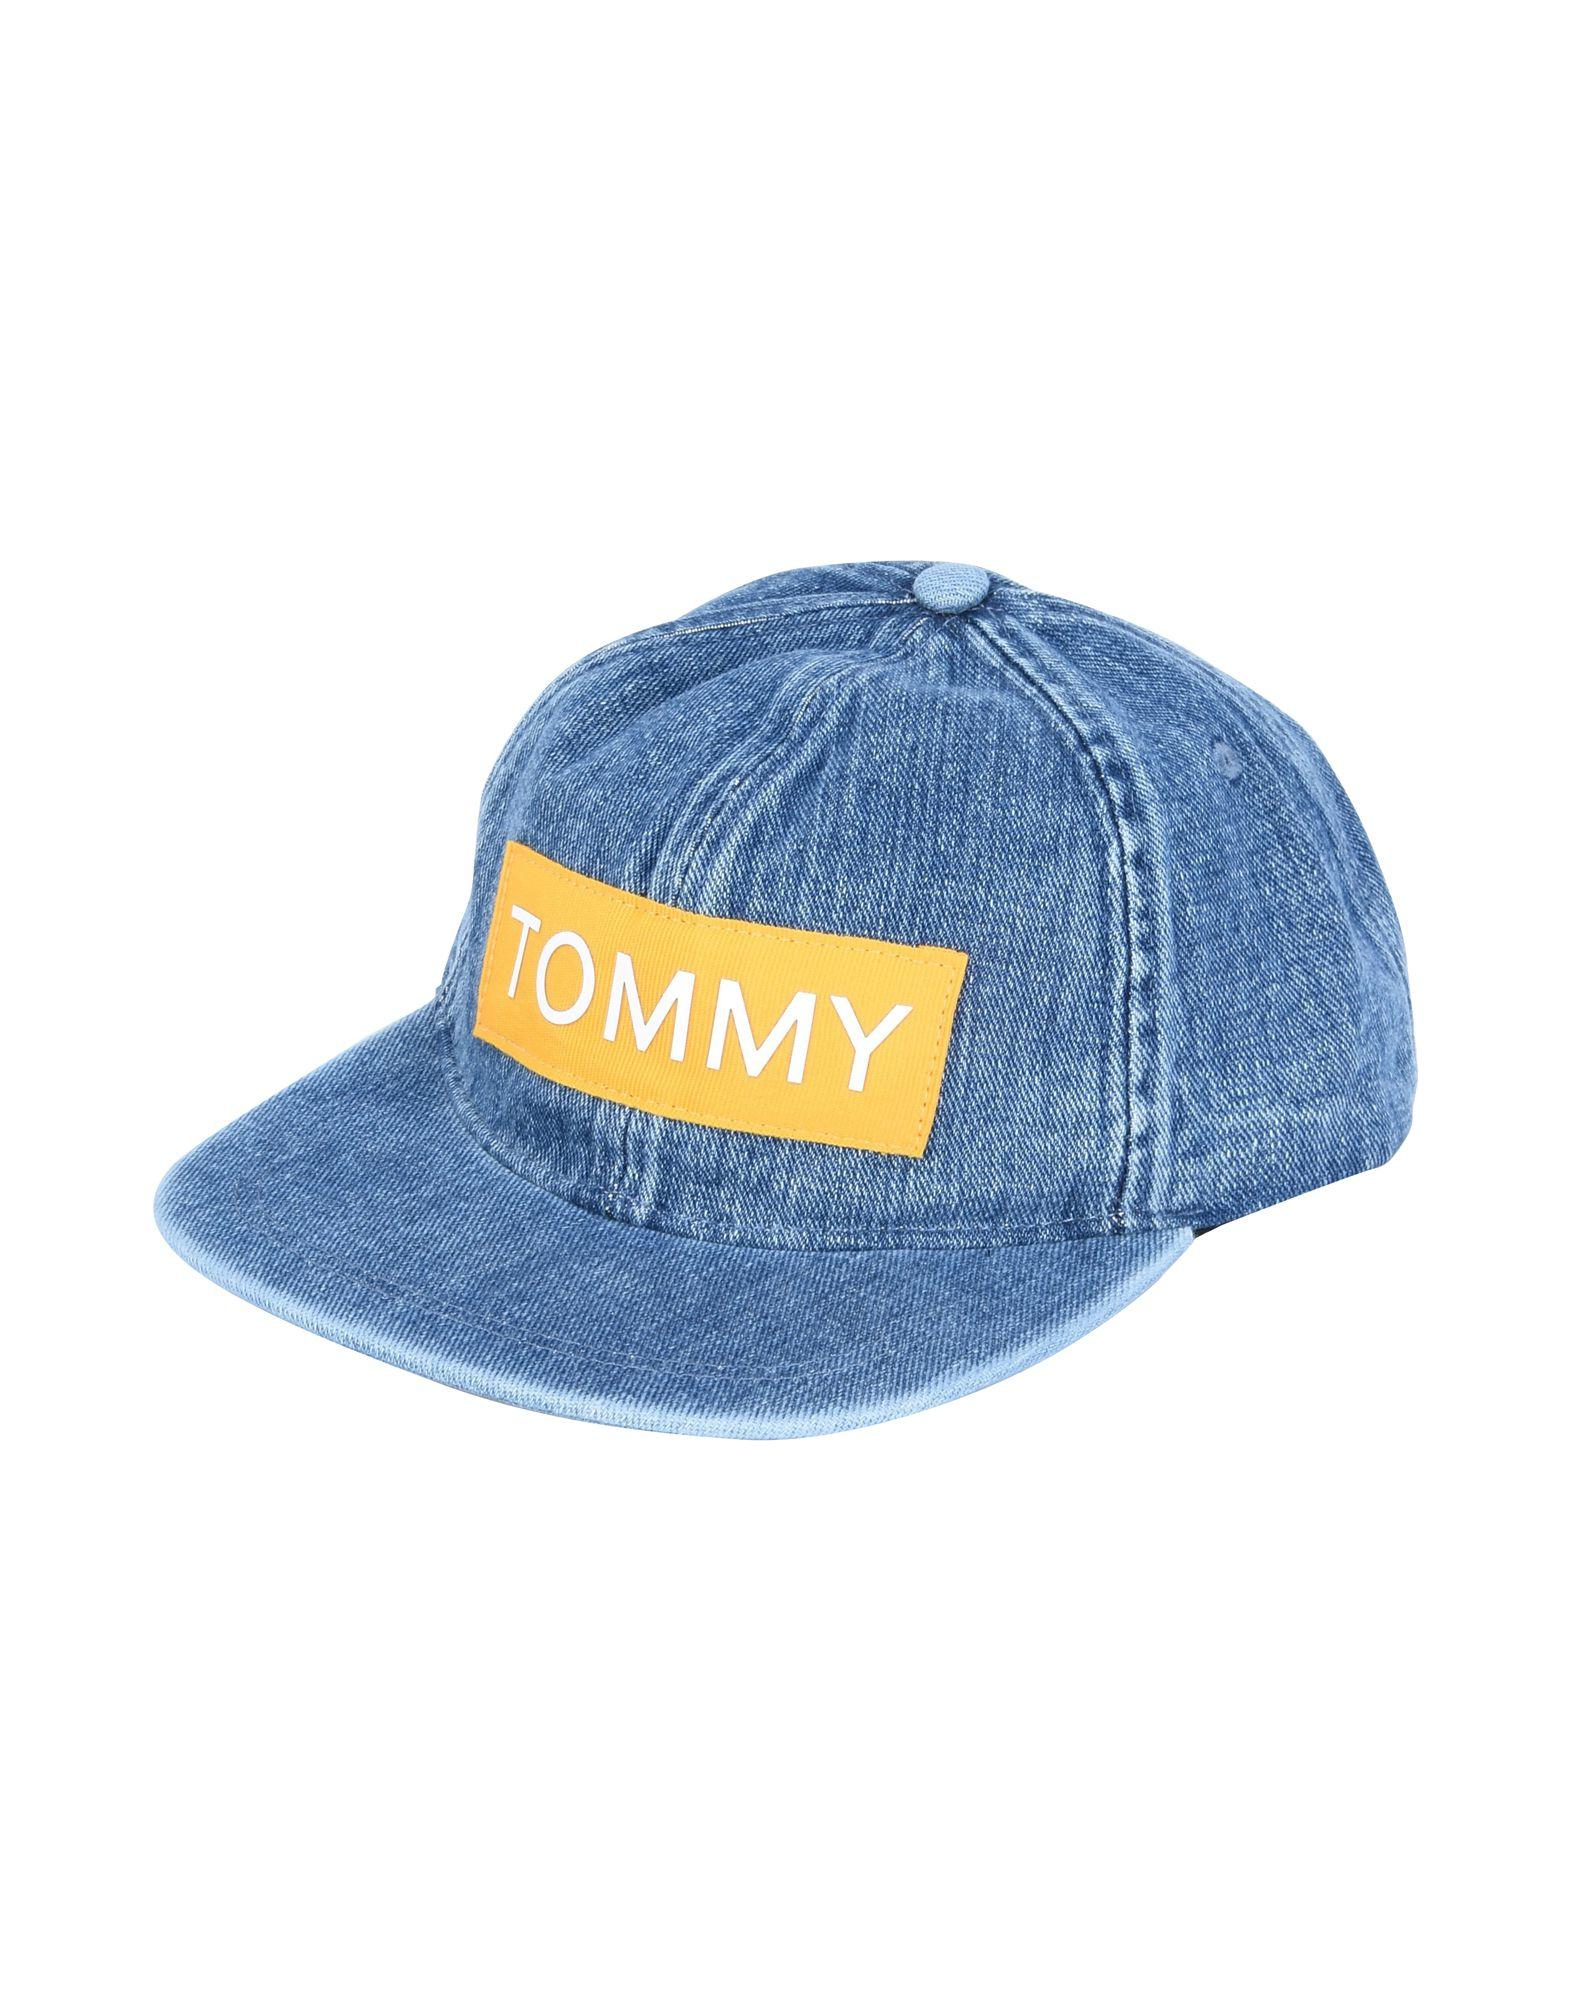 Lyst - Tommy Hilfiger Hat in Blue for Men 9dd2e891f54c